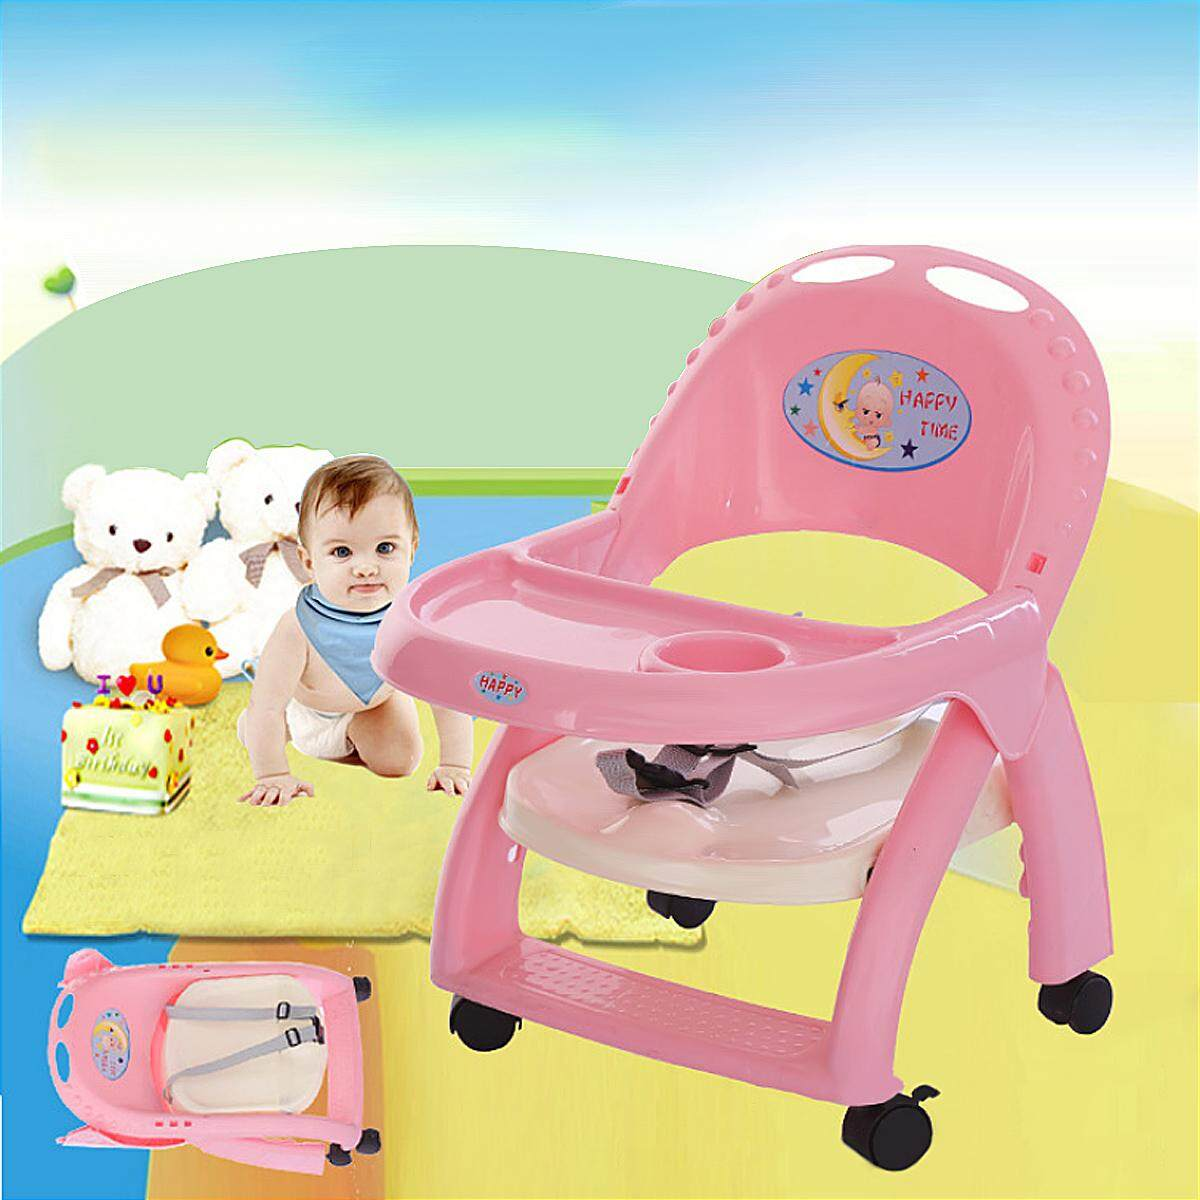 baby sofa lazada arm rest cup holder alive feeding chair total price list  santafe home